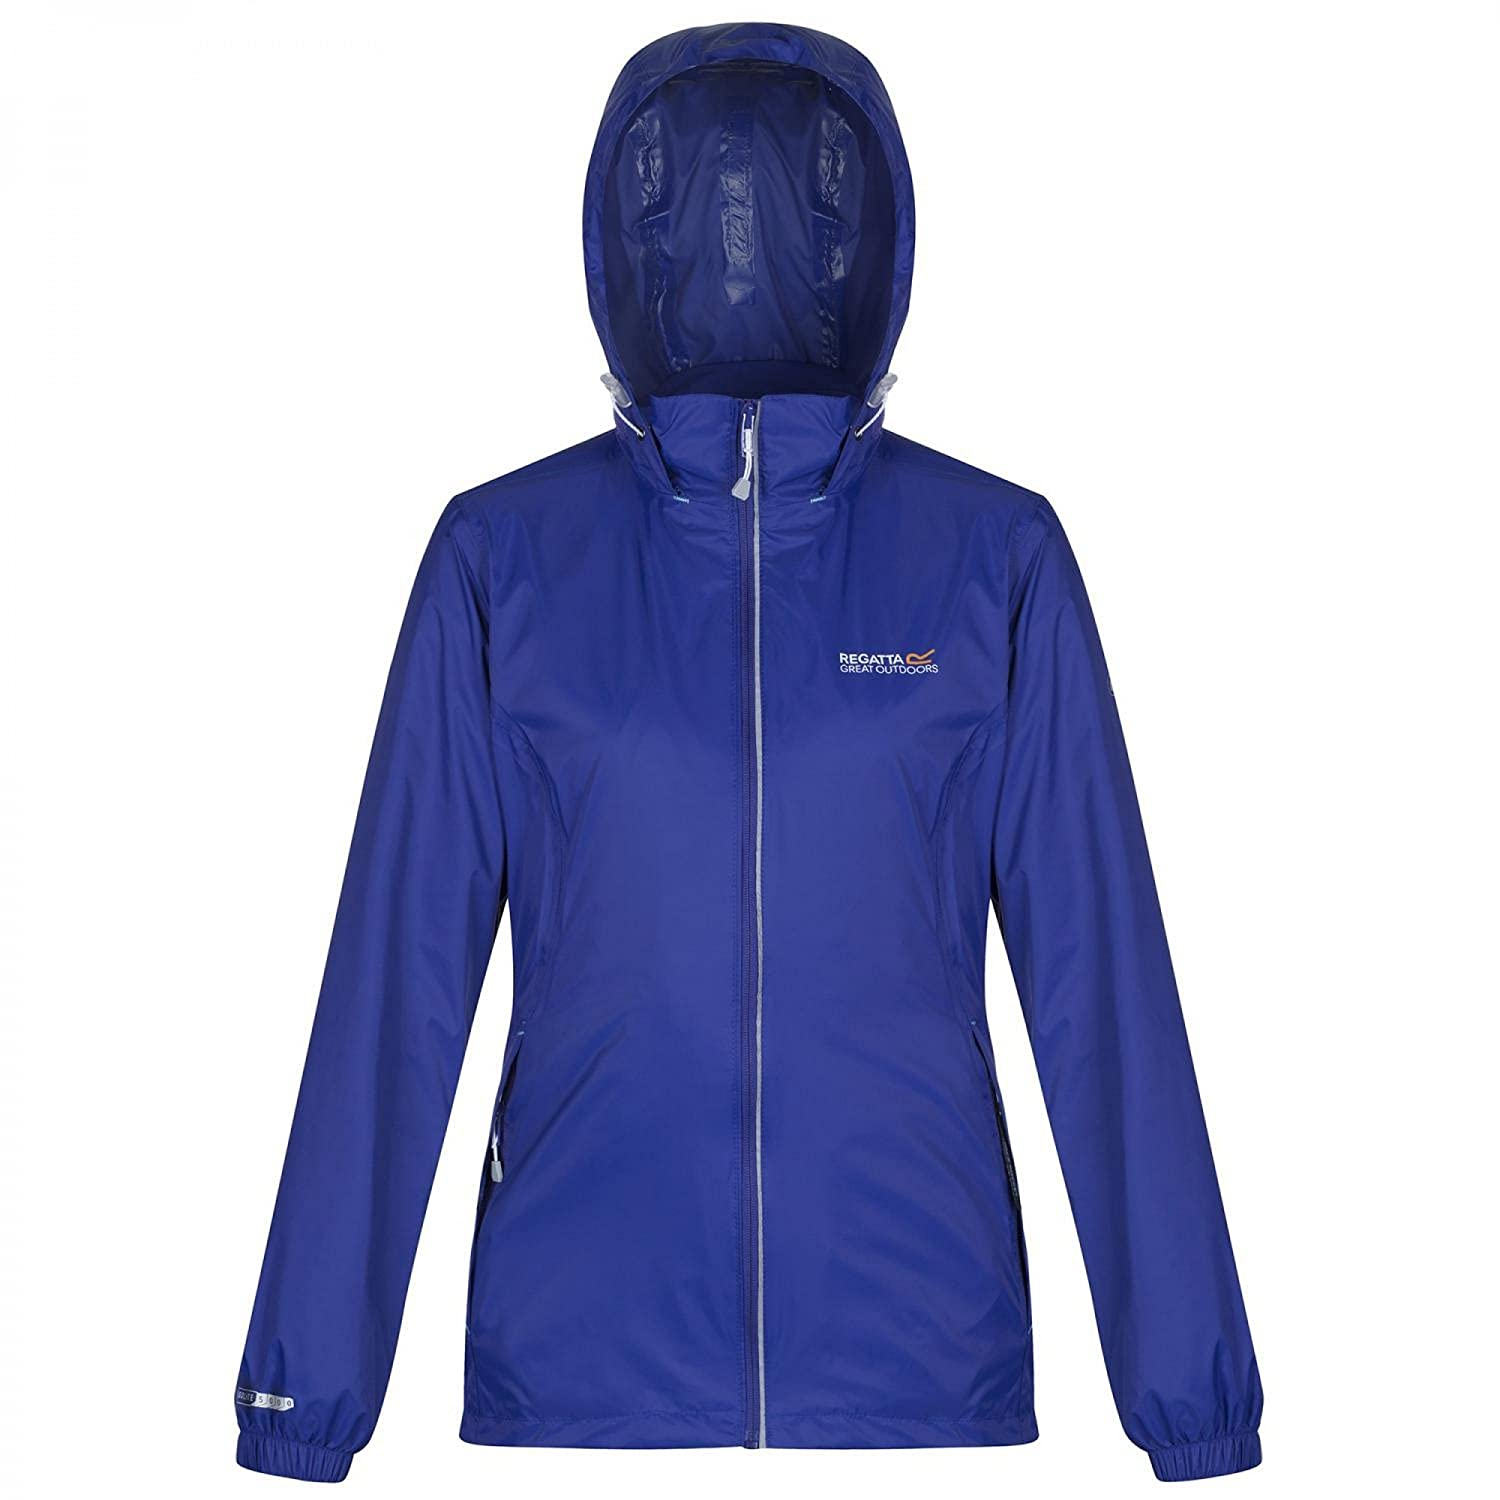 Outdoor jacken damen 54